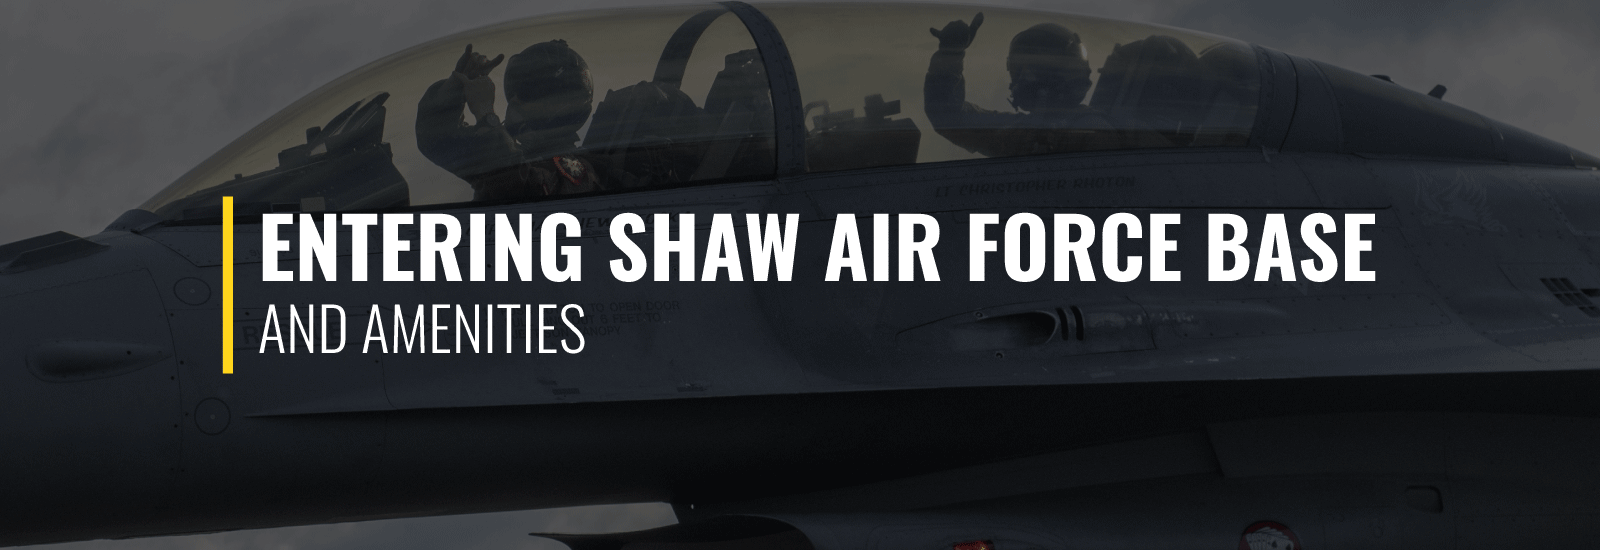 Entering Shaw Air Force Base and Amenities